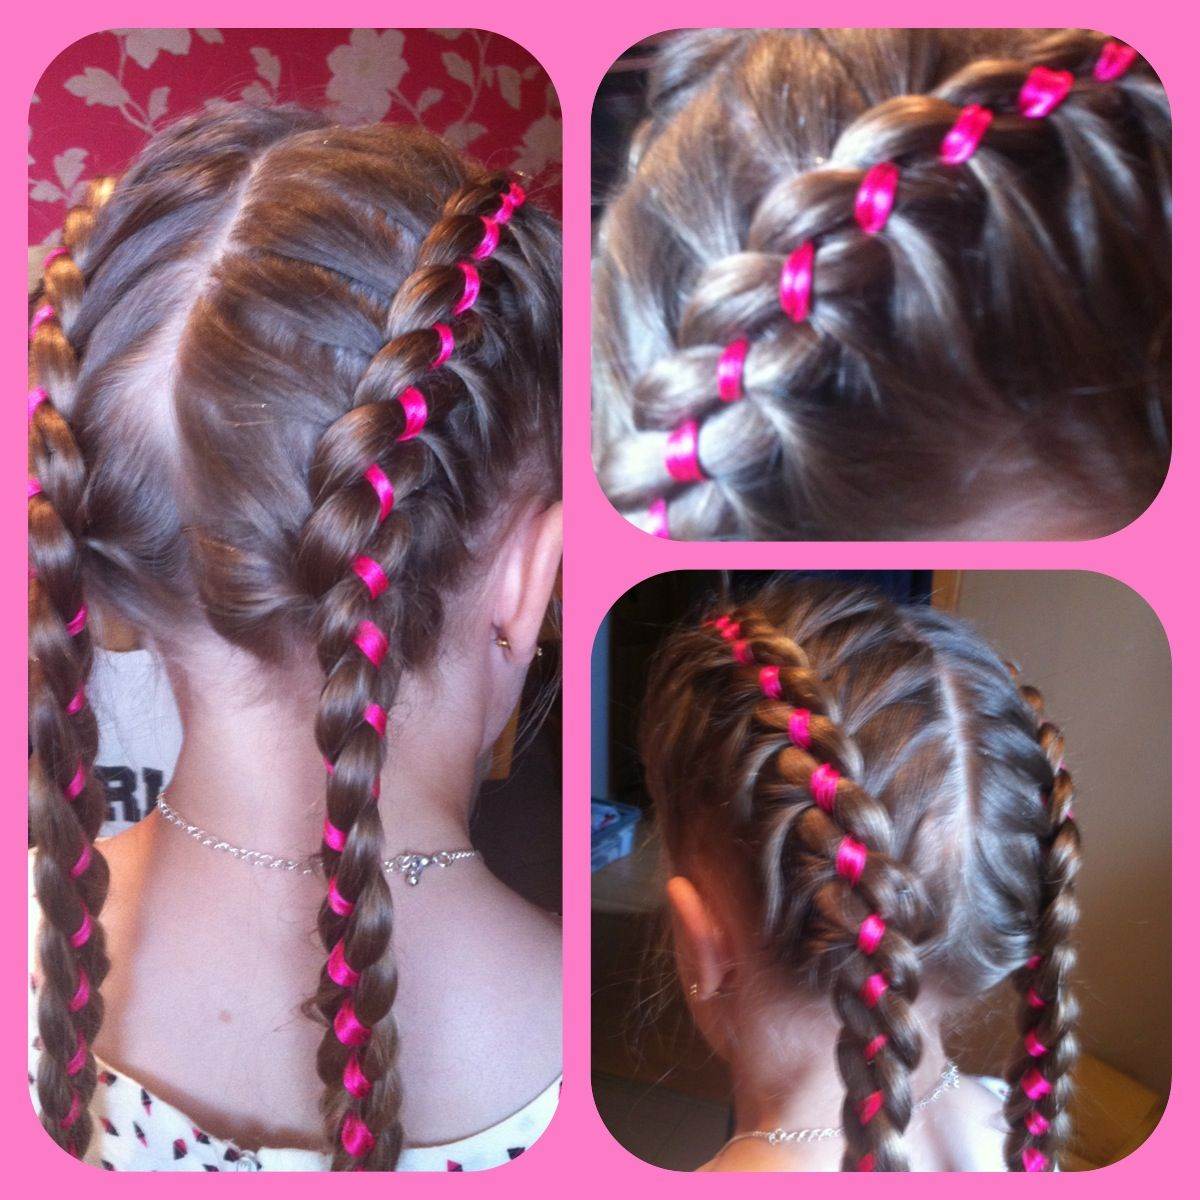 Braids With Ribbons Short Hair Styles Easy Short Hair Updo Kids Braided Hairstyles